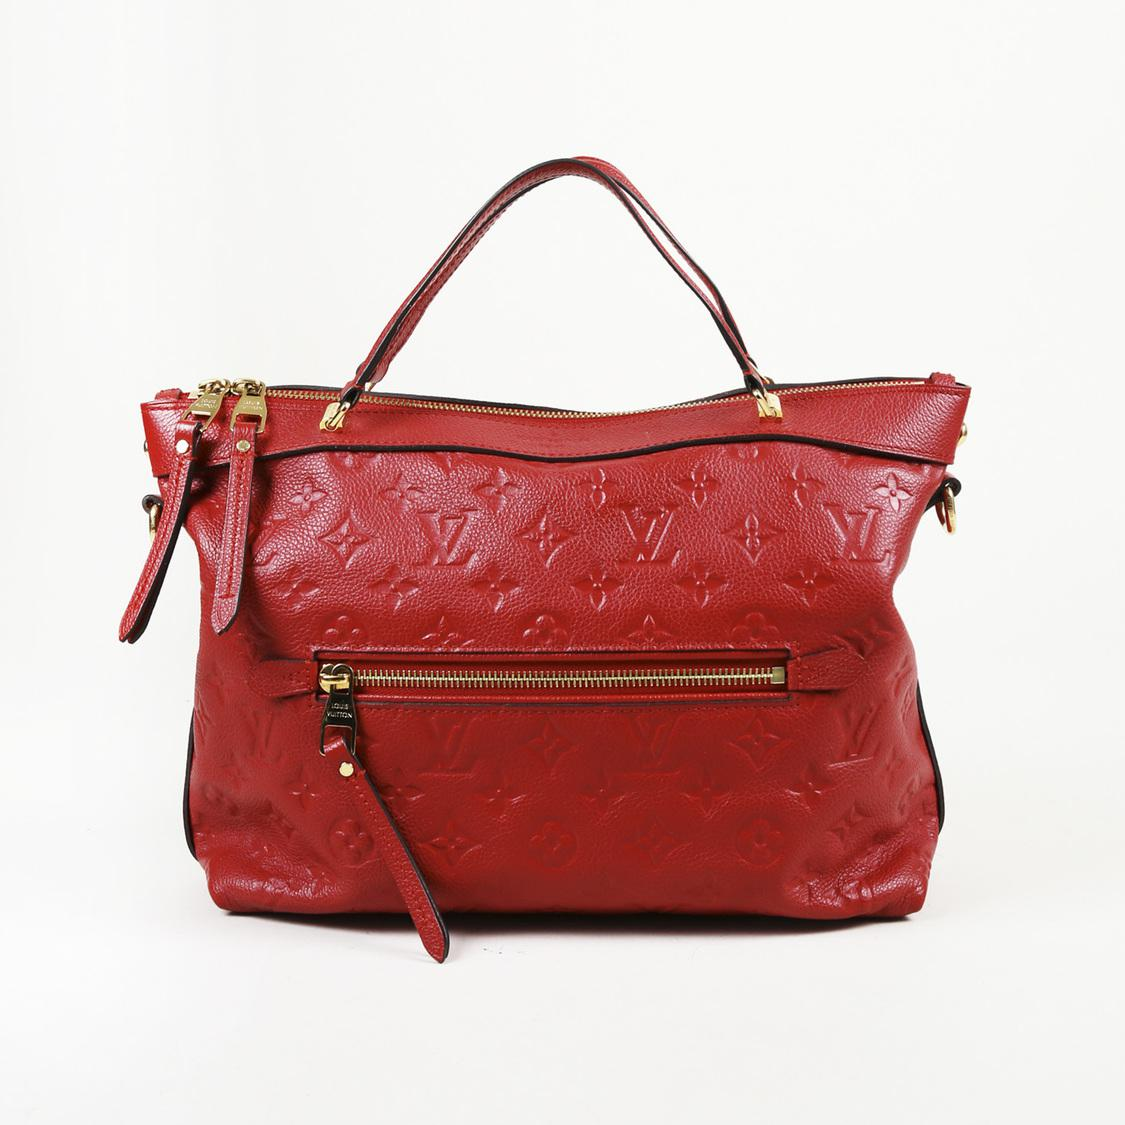 Lyst - Louis Vuitton Red Monogram Leather